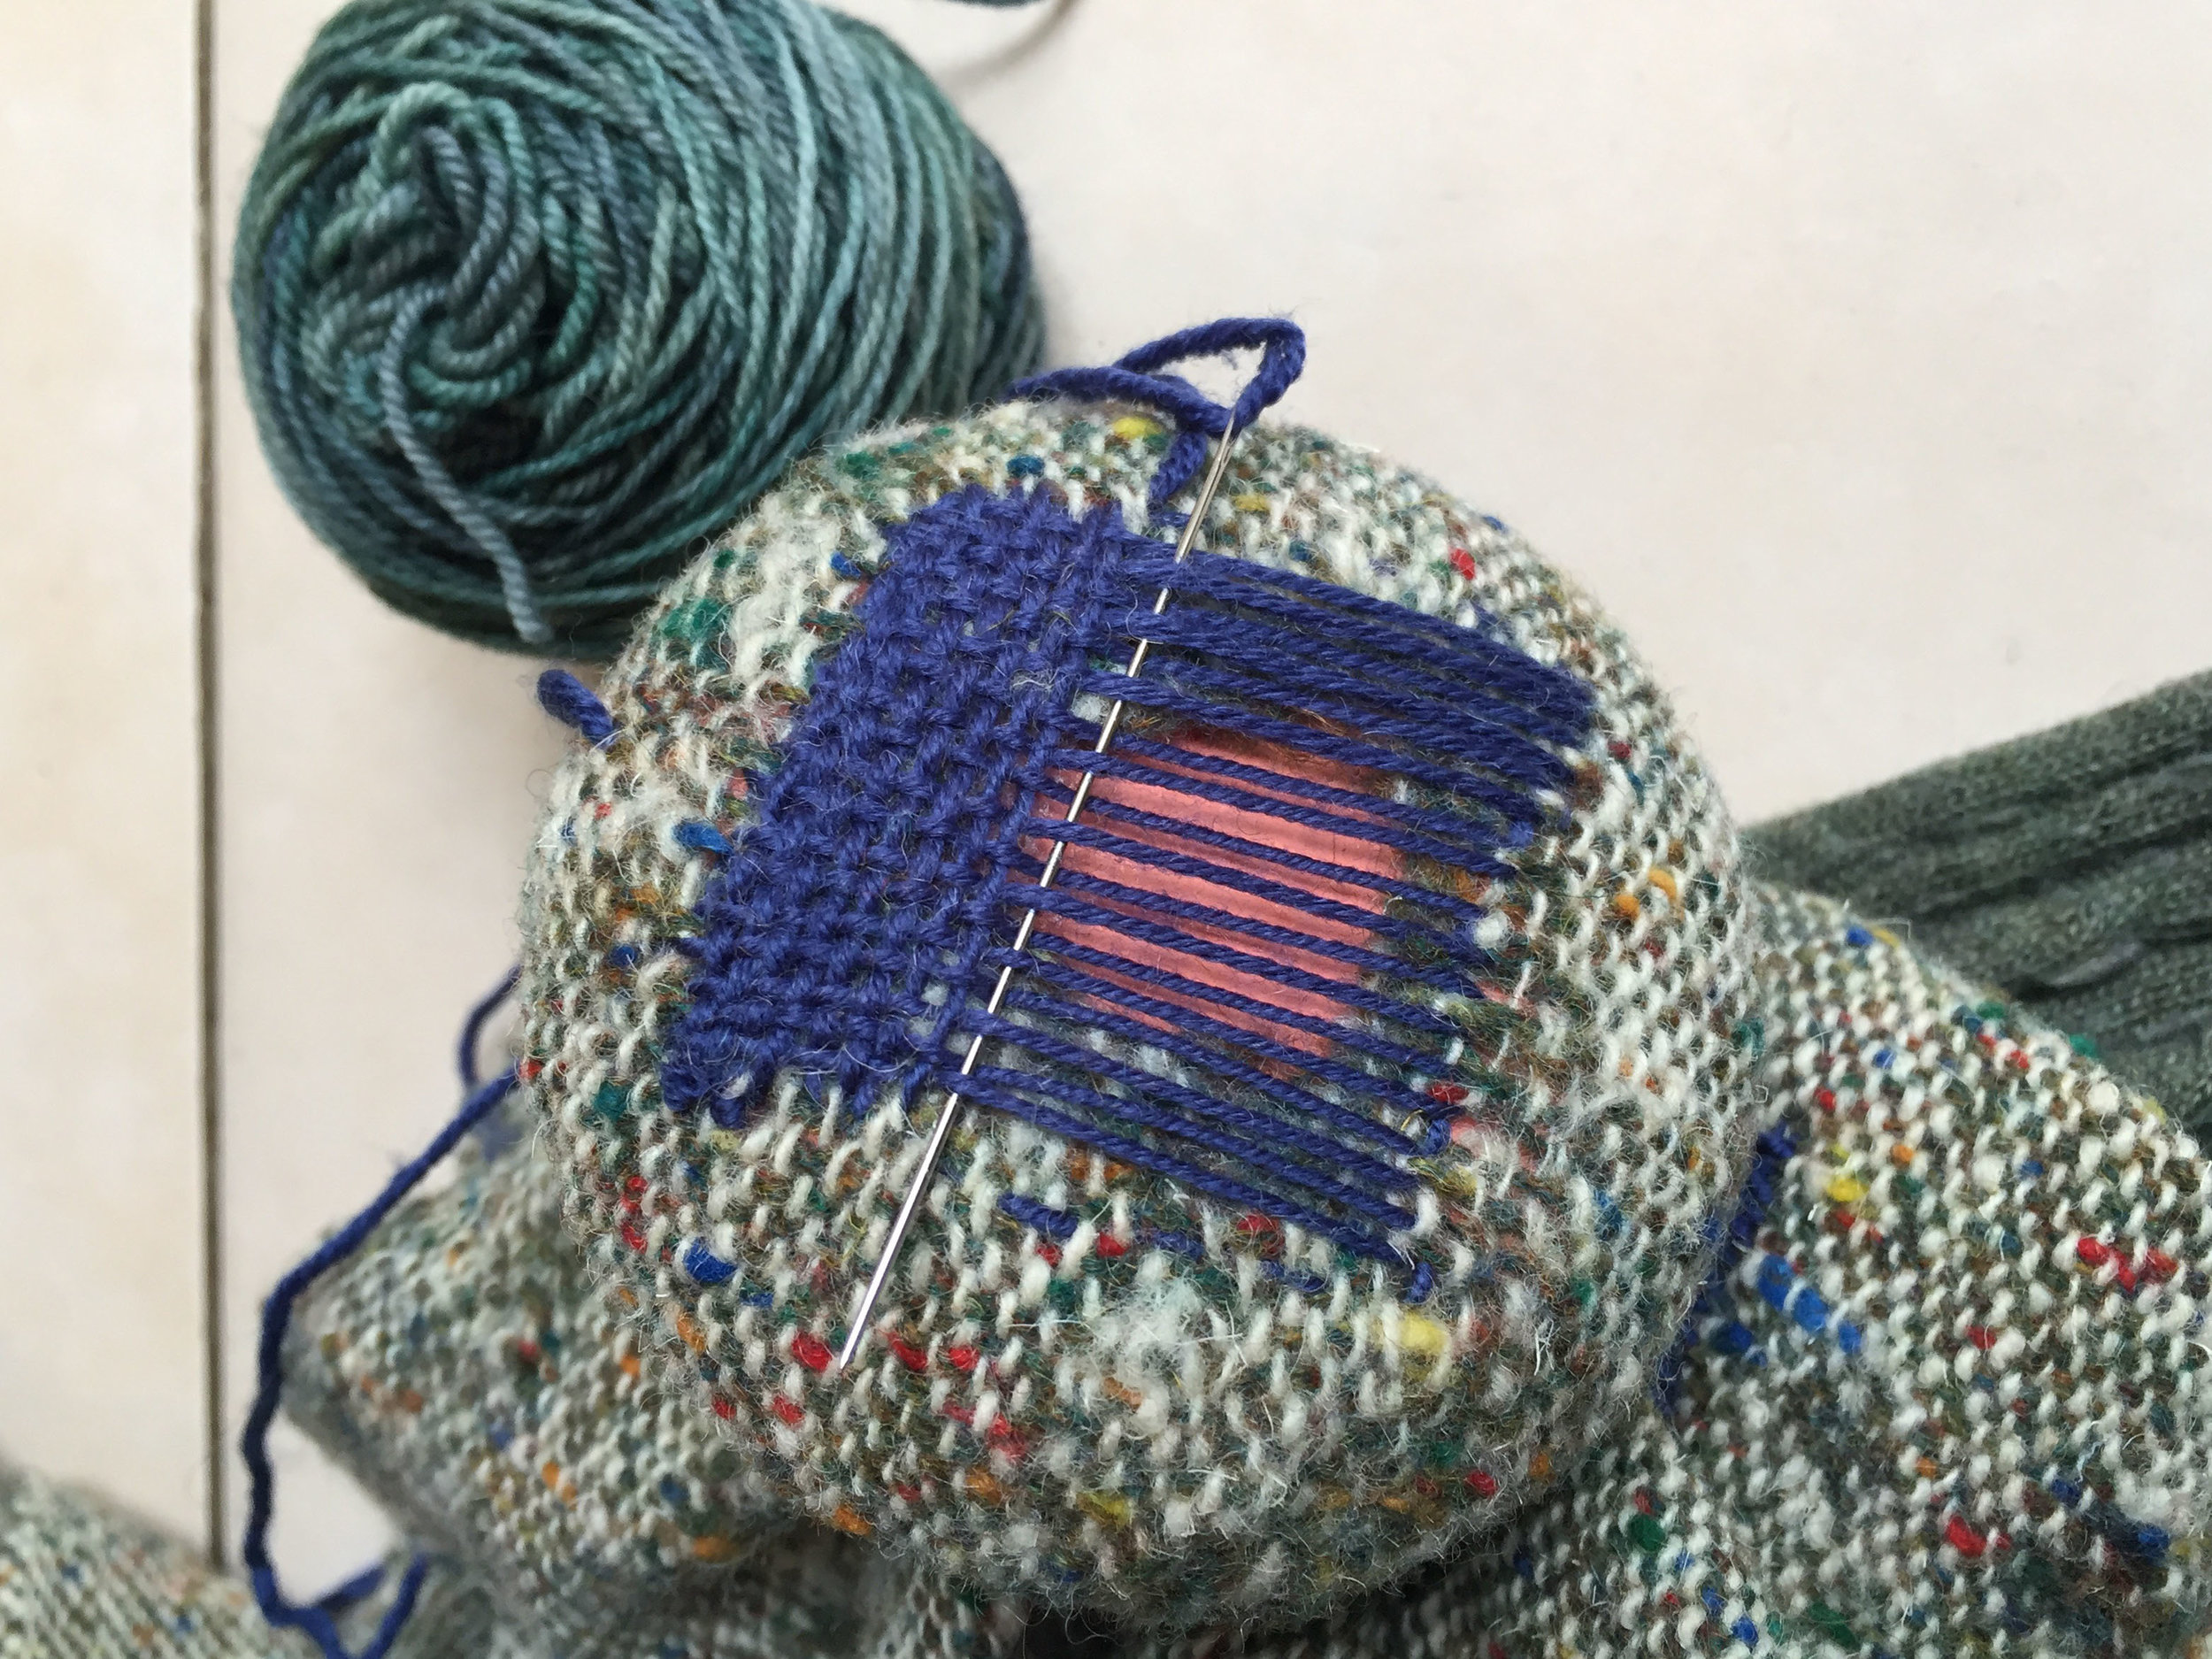 Blue woven darn in process on hand woven fabric